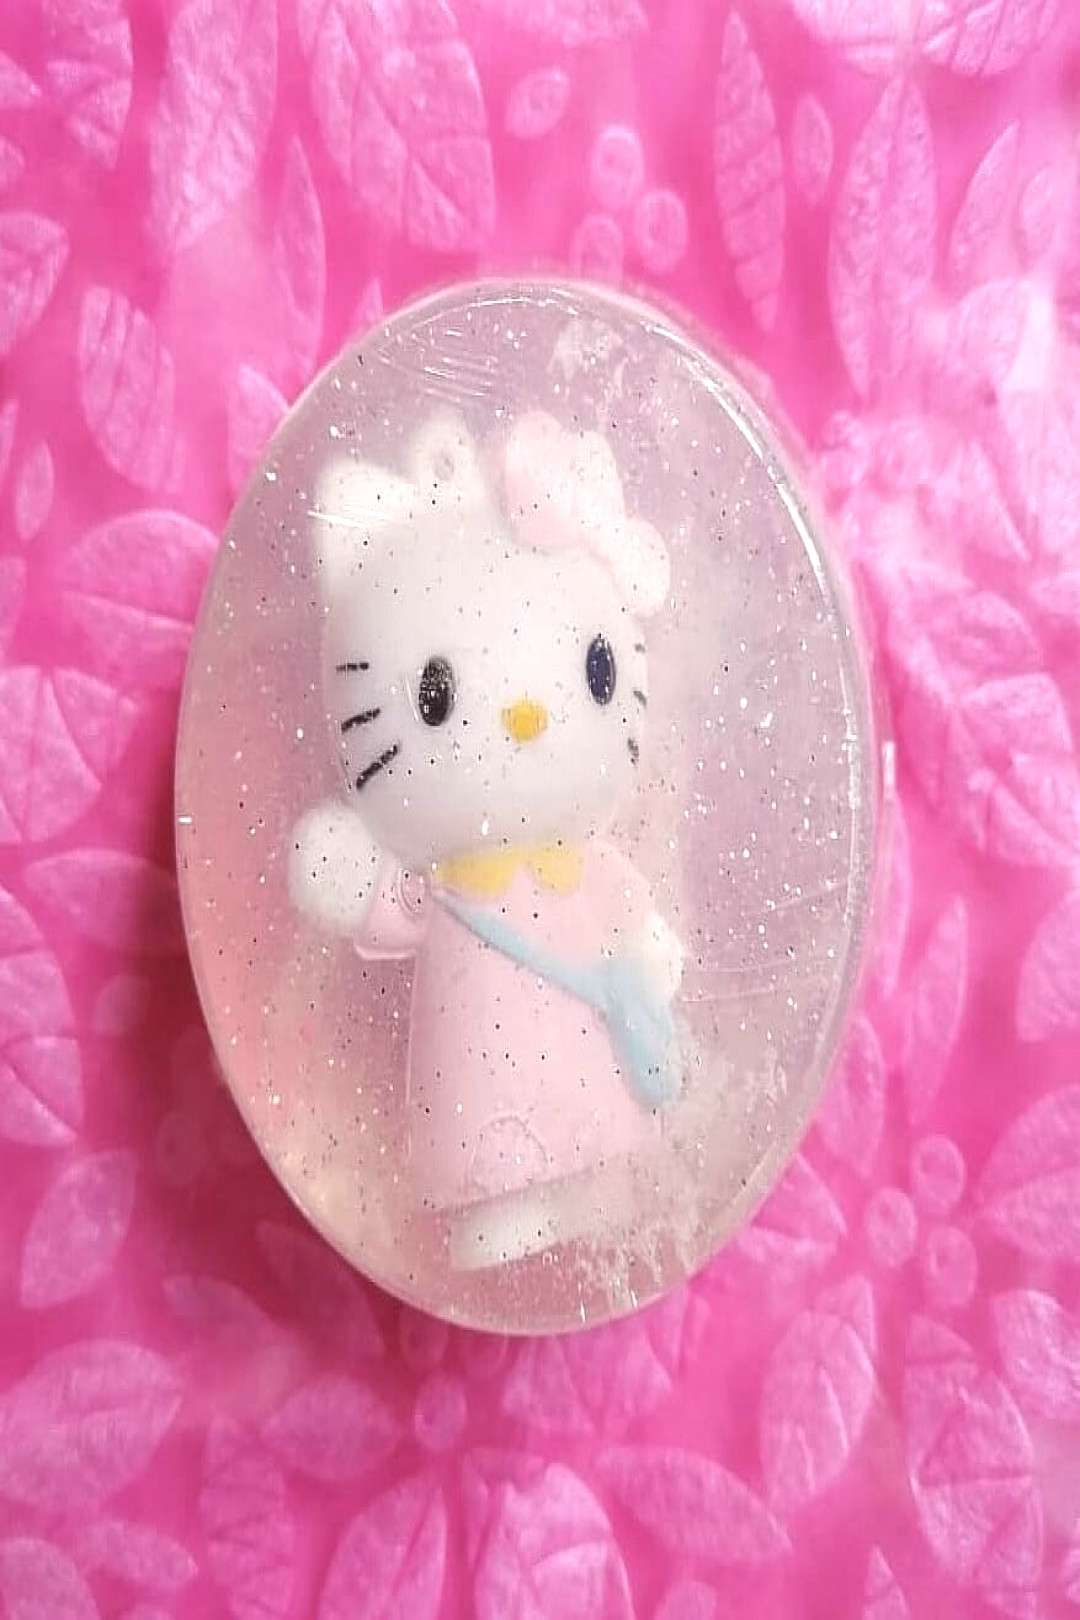 #transparent #february #memories #glittery #scented #162020 #photo #adore #makes #lamsa #kids #will #this #soap #toy Kids will adore this A toy in transparent glittery scented soap TYou can find Kid...